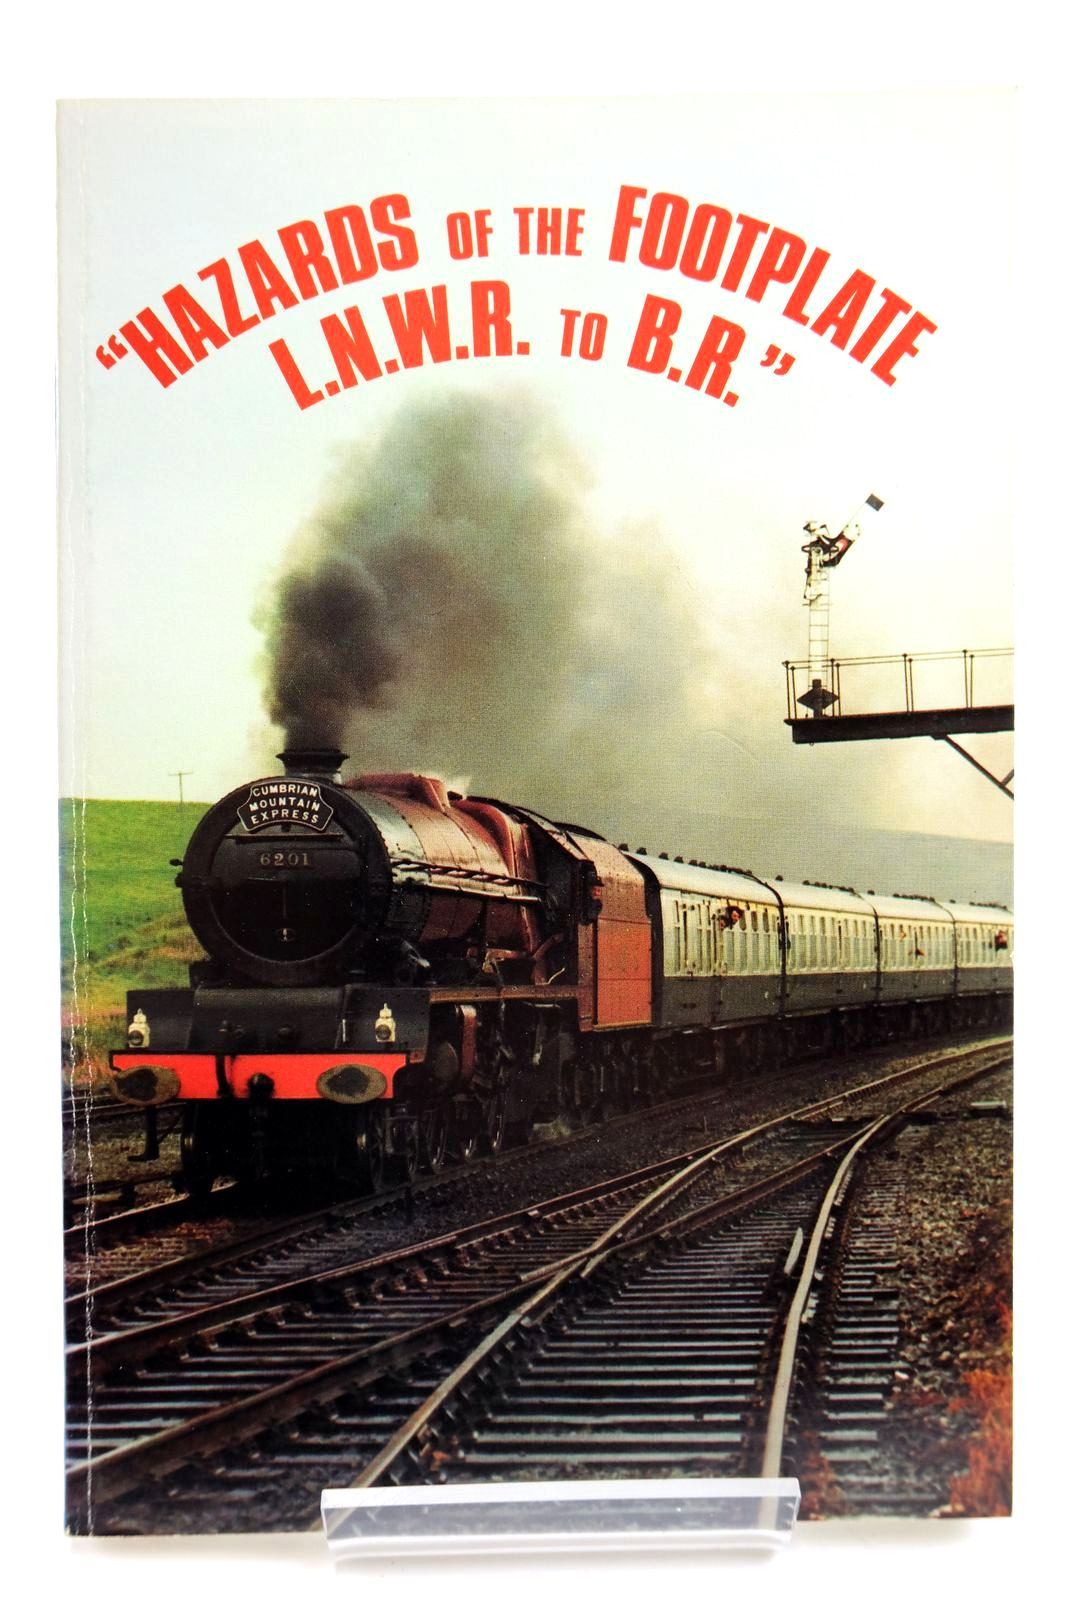 Photo of HAZARDS OF THE FOOTPLATE L.N.W.R. TO B.R. written by Roberts, John Easter published by John Easter Roberts (STOCK CODE: 2133743)  for sale by Stella & Rose's Books